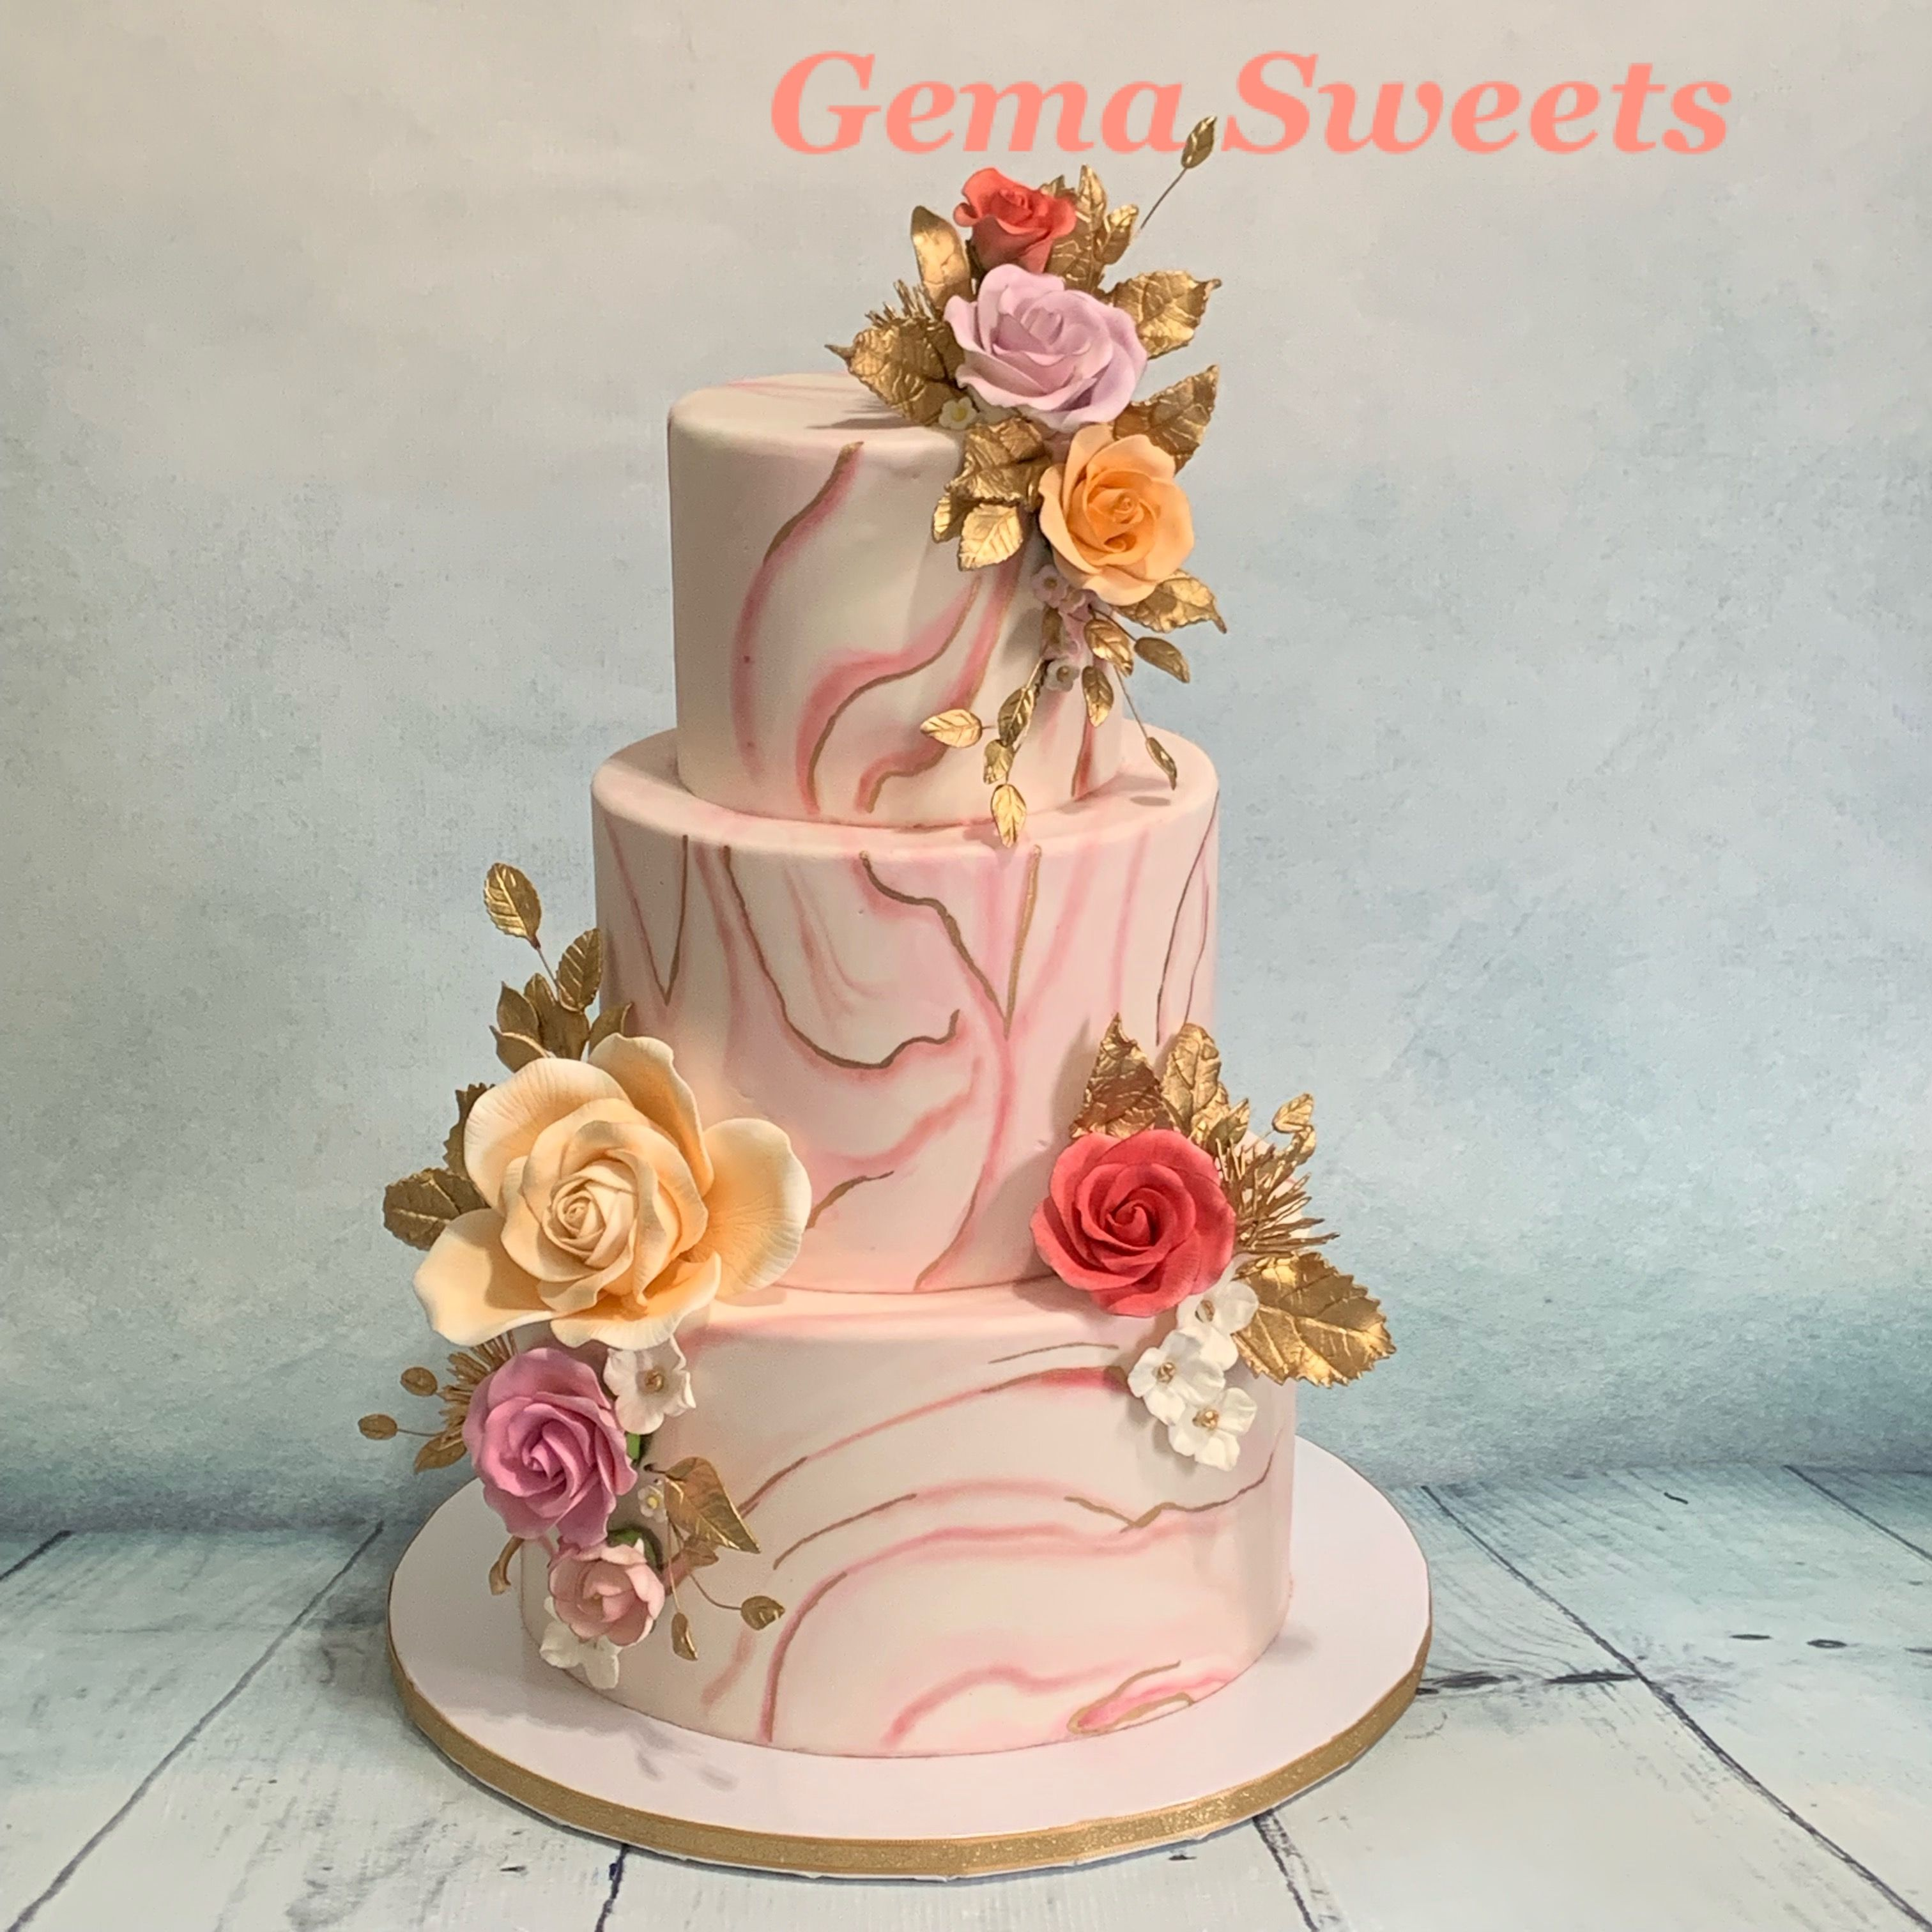 Pin By Gema Sweets On My Creations Marbled Fondant Cake Fondant Cake Fondant